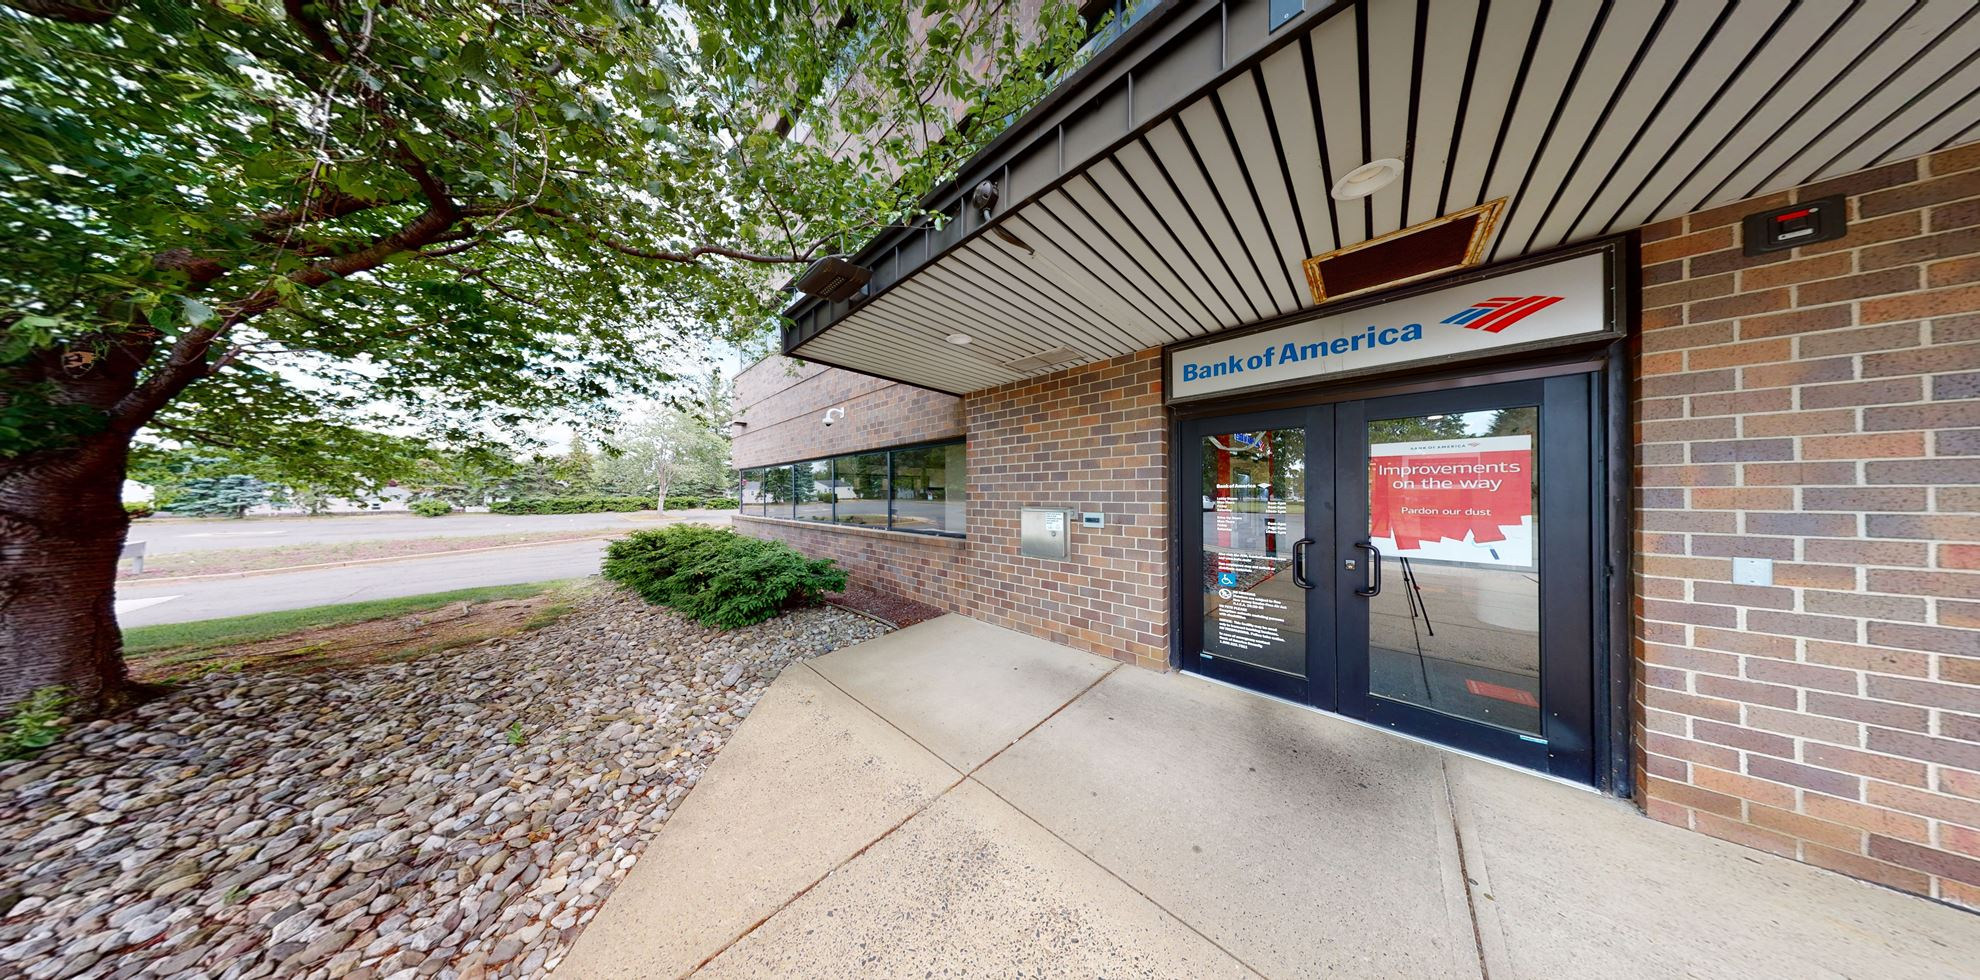 Bank of America financial center with walk-up ATM | 1230 Parkway Ave STE 106, West Trenton, NJ 08628